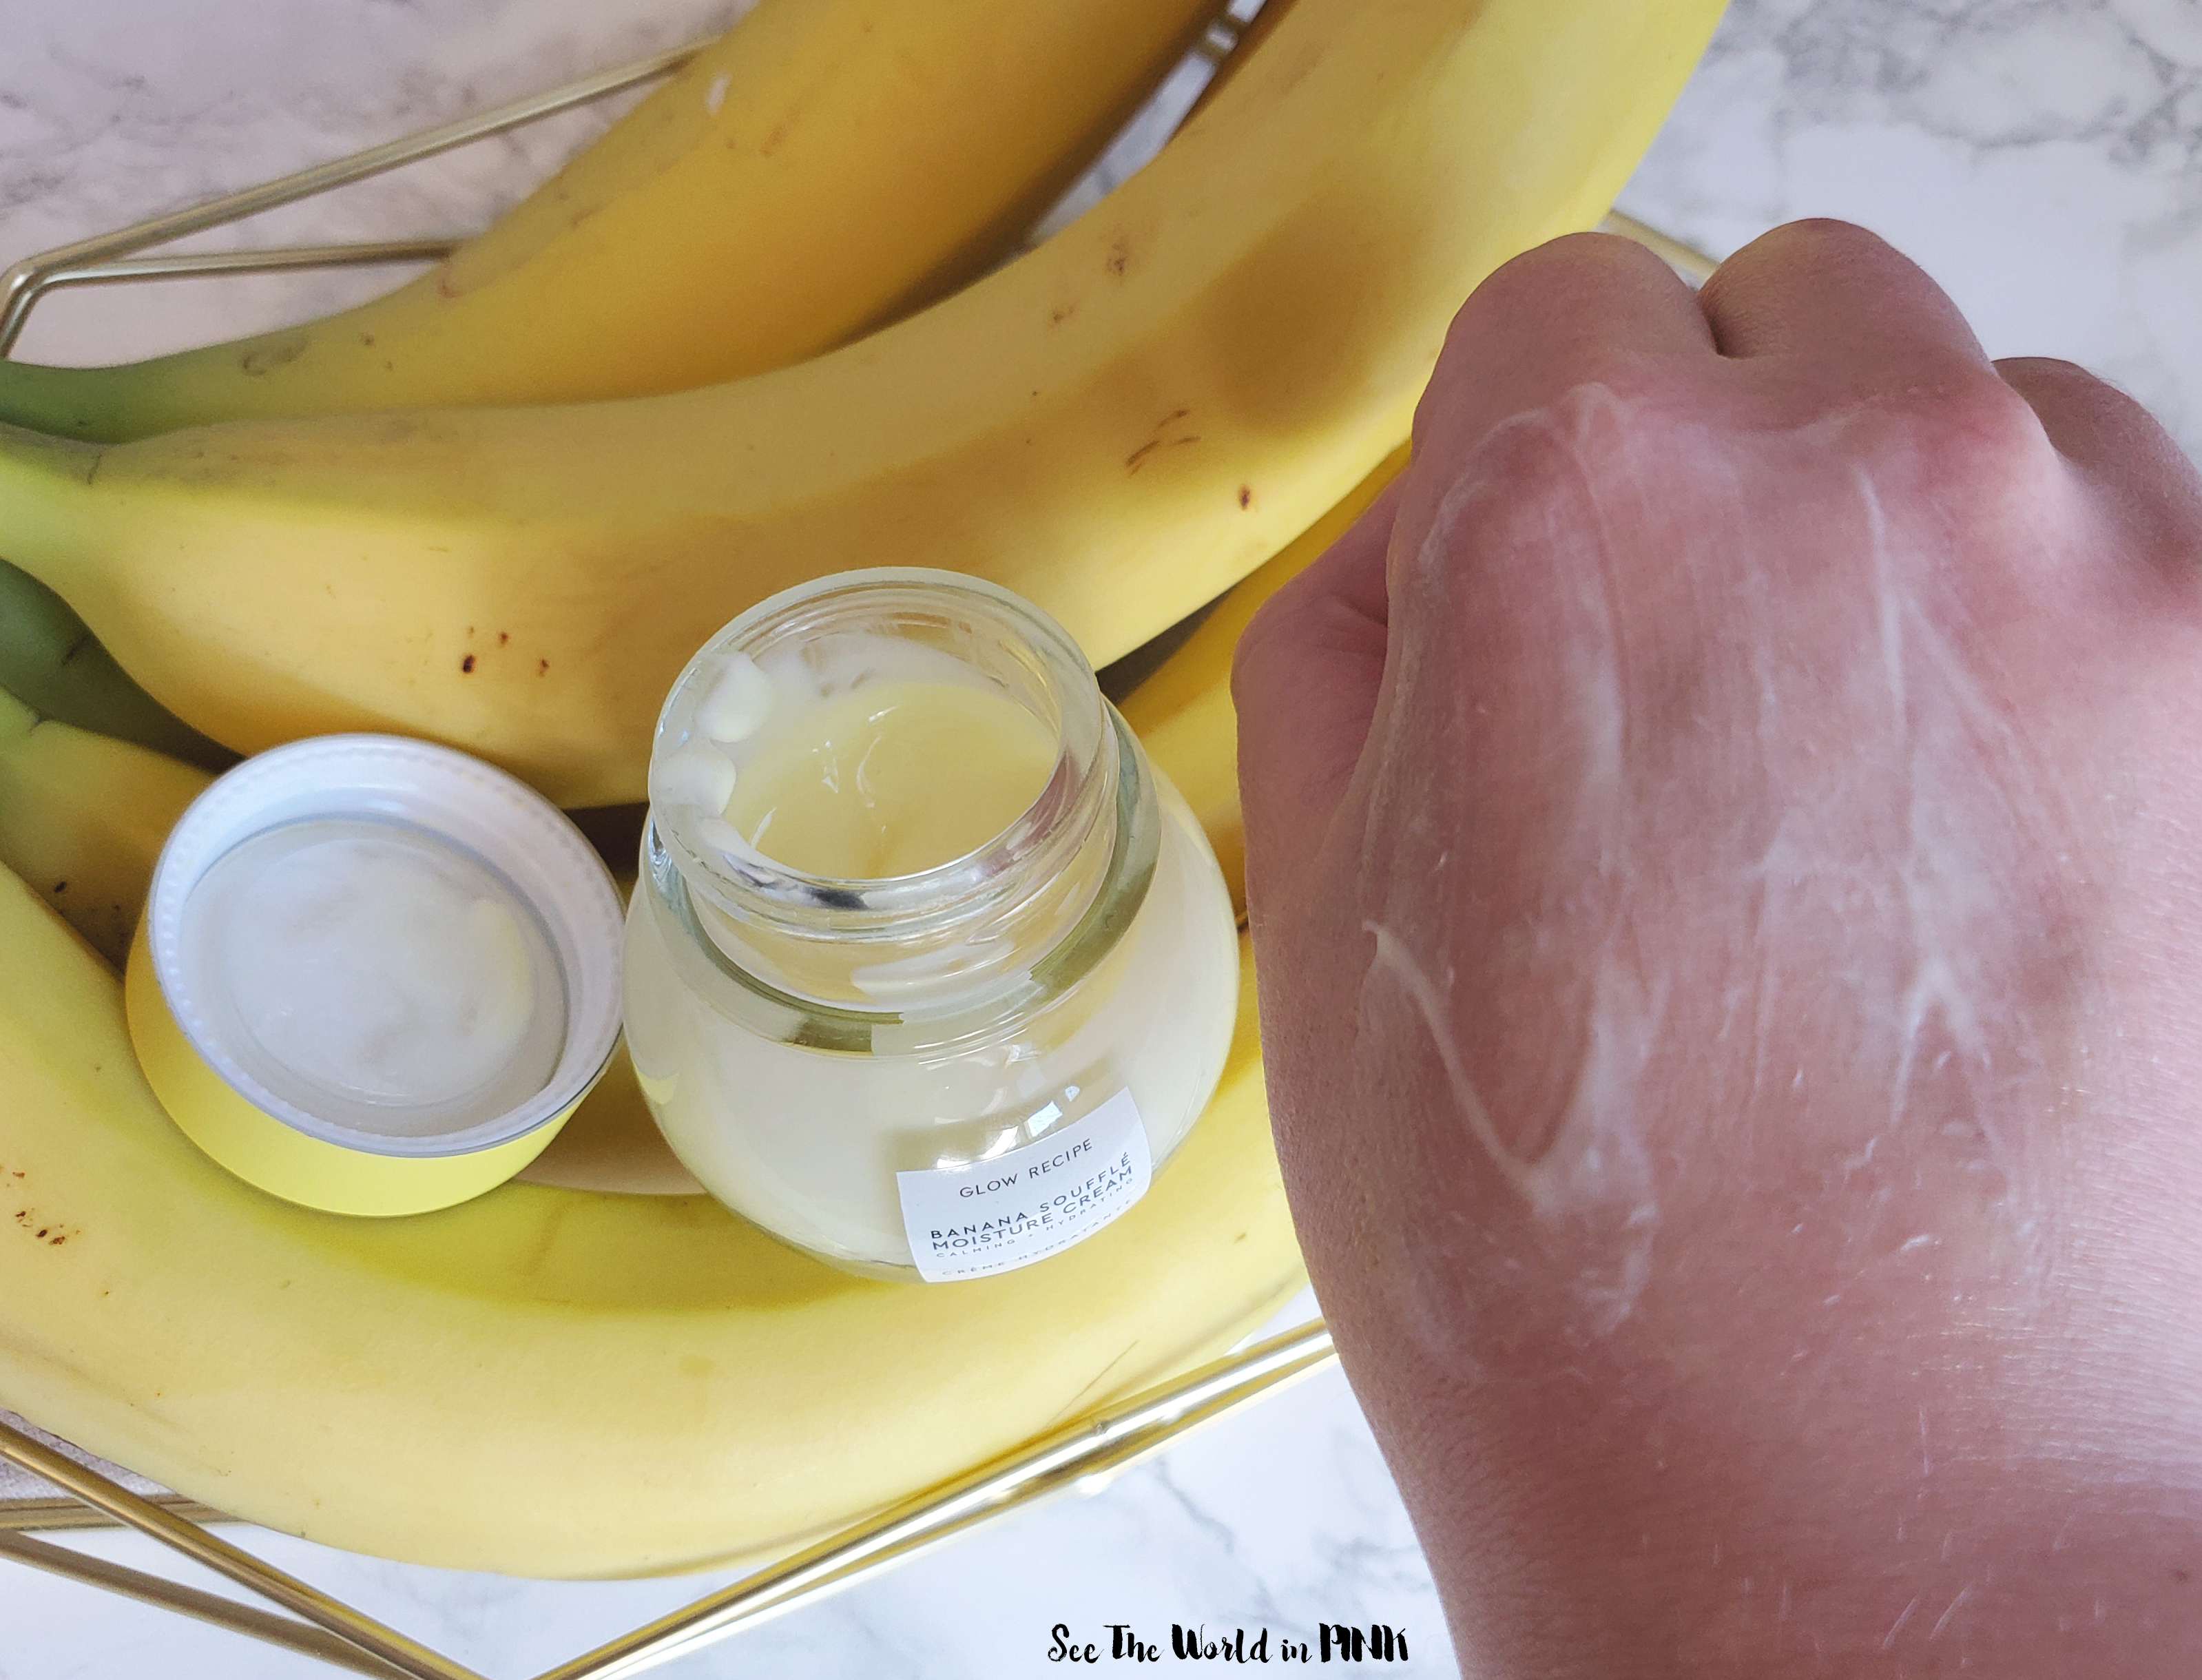 Skincare Sunday - Glow Recipe Banana Souffle Moisture Cream